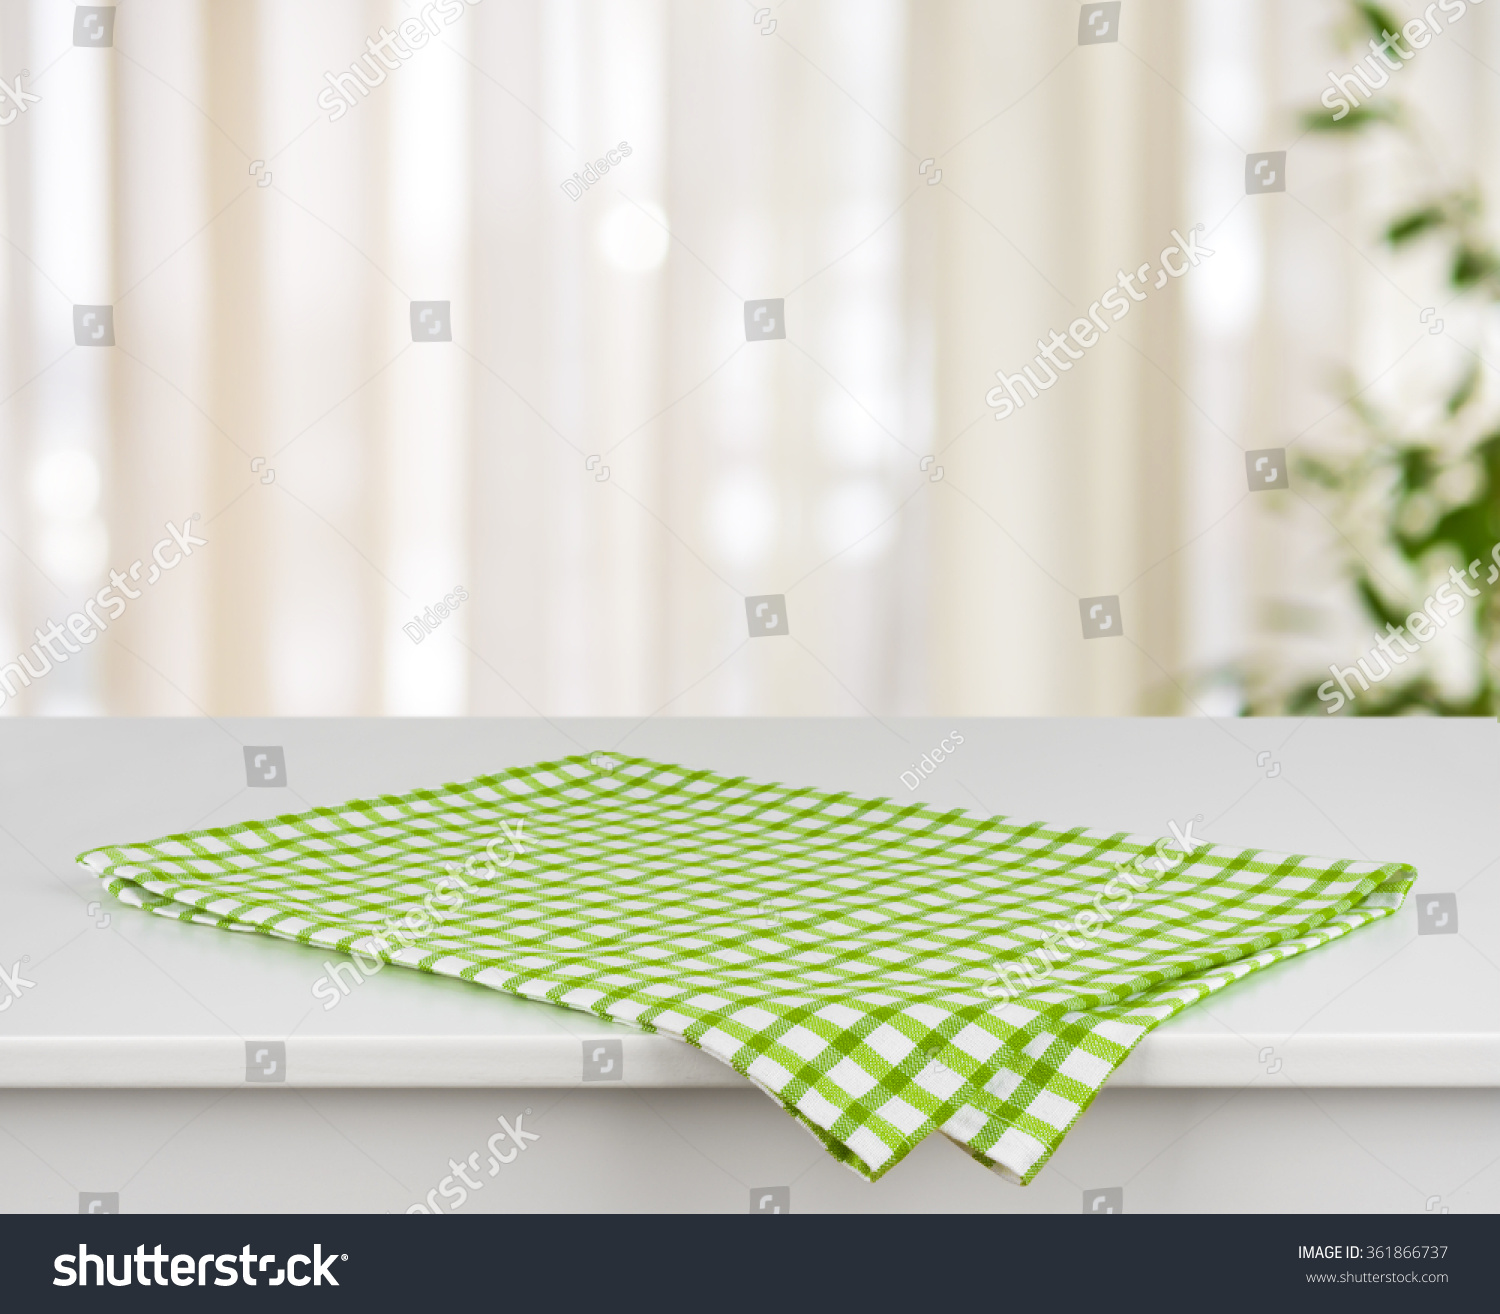 Green Checkered Kitchen Towel On Table Stock Photo (Royalty Free ...